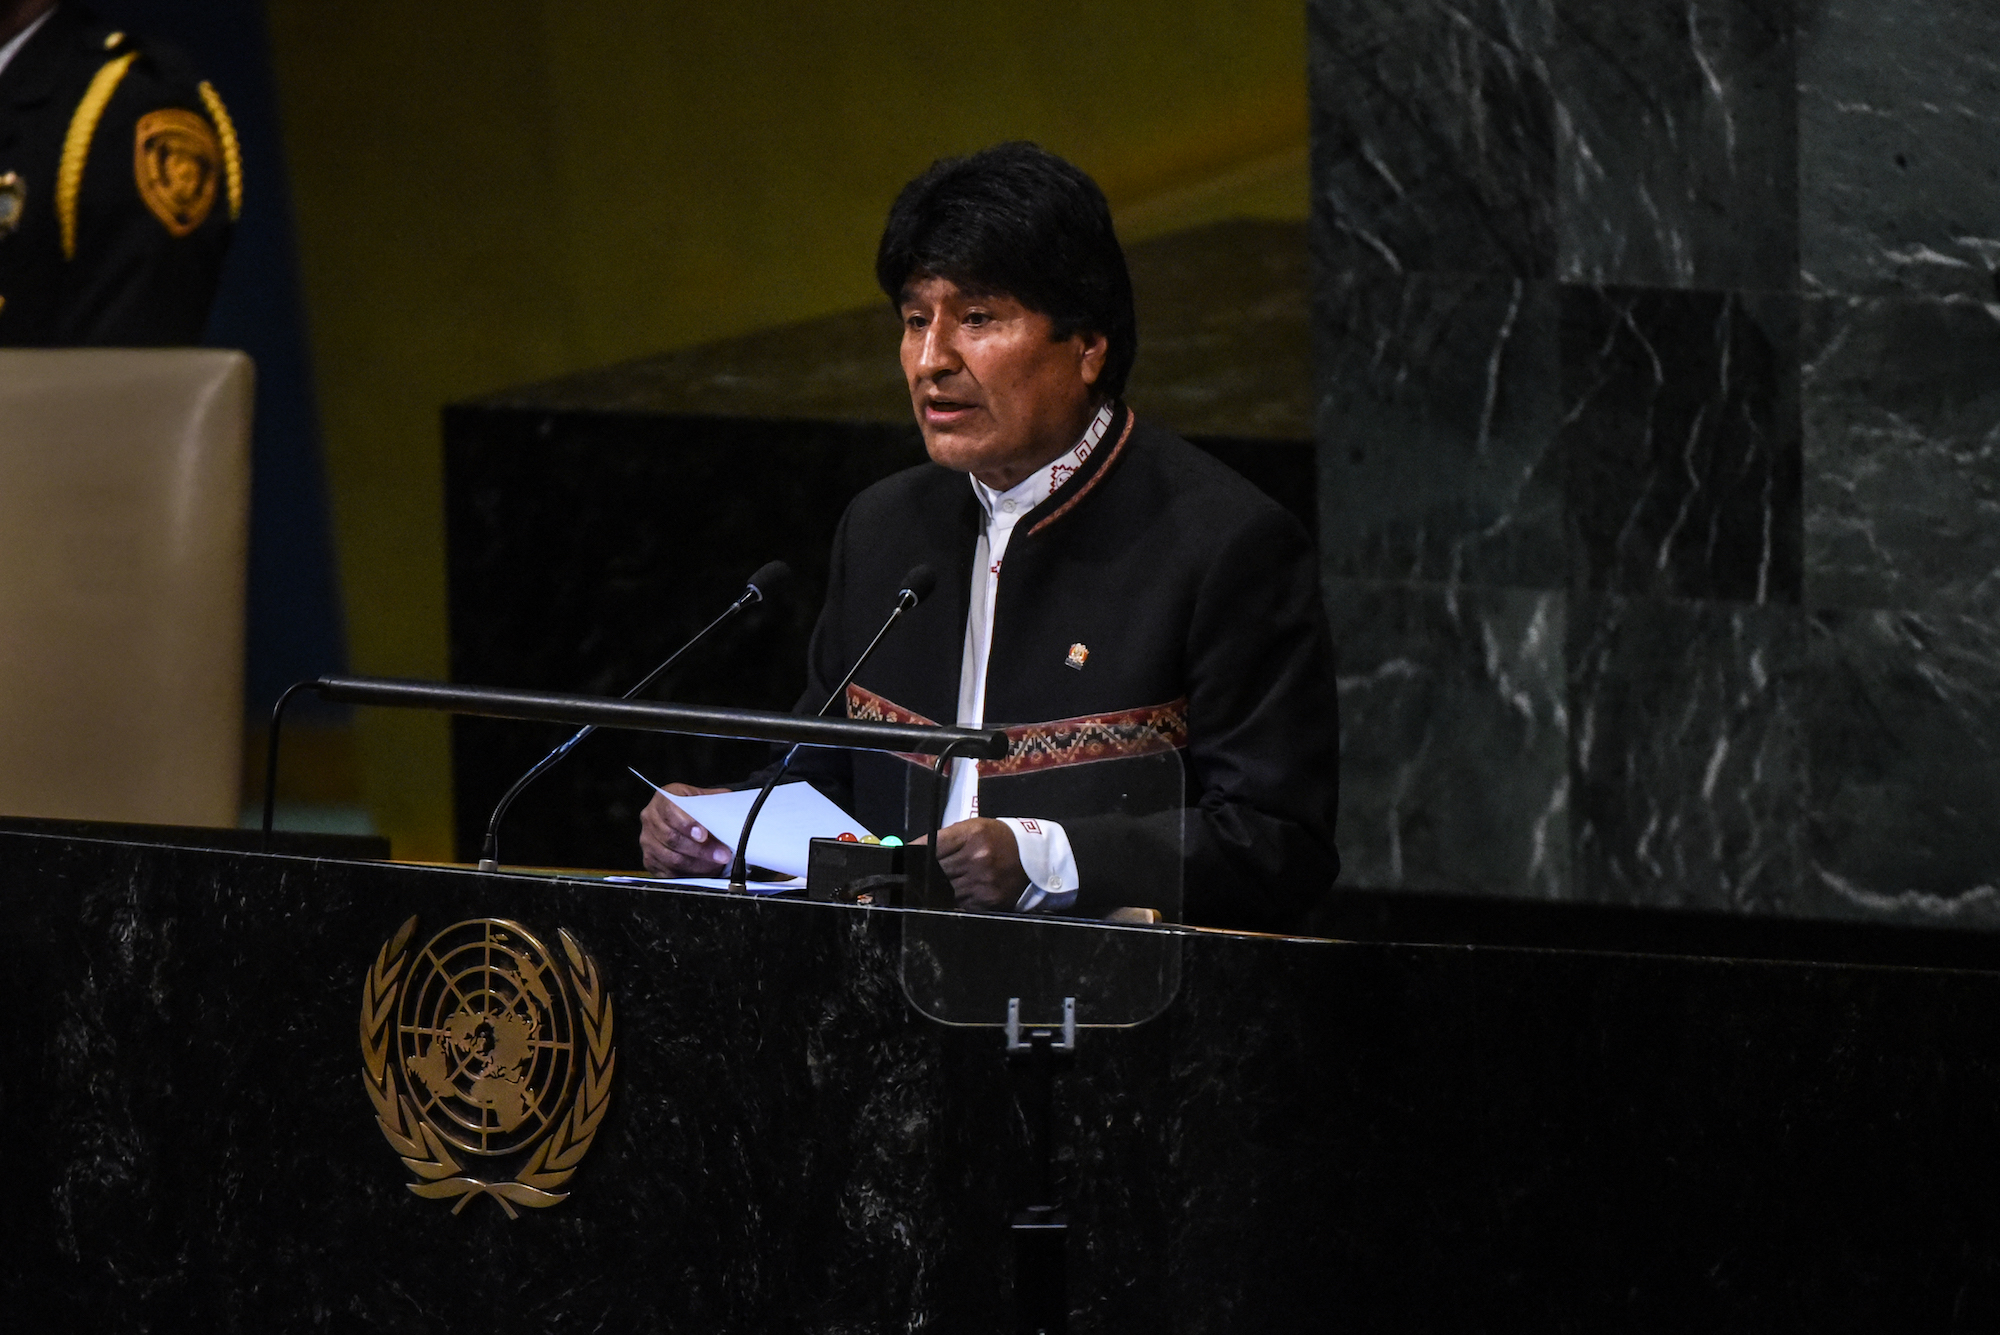 """At United Nations, Bolivian President Evo Morales Says US """"Does Not Care for Human Rights"""""""